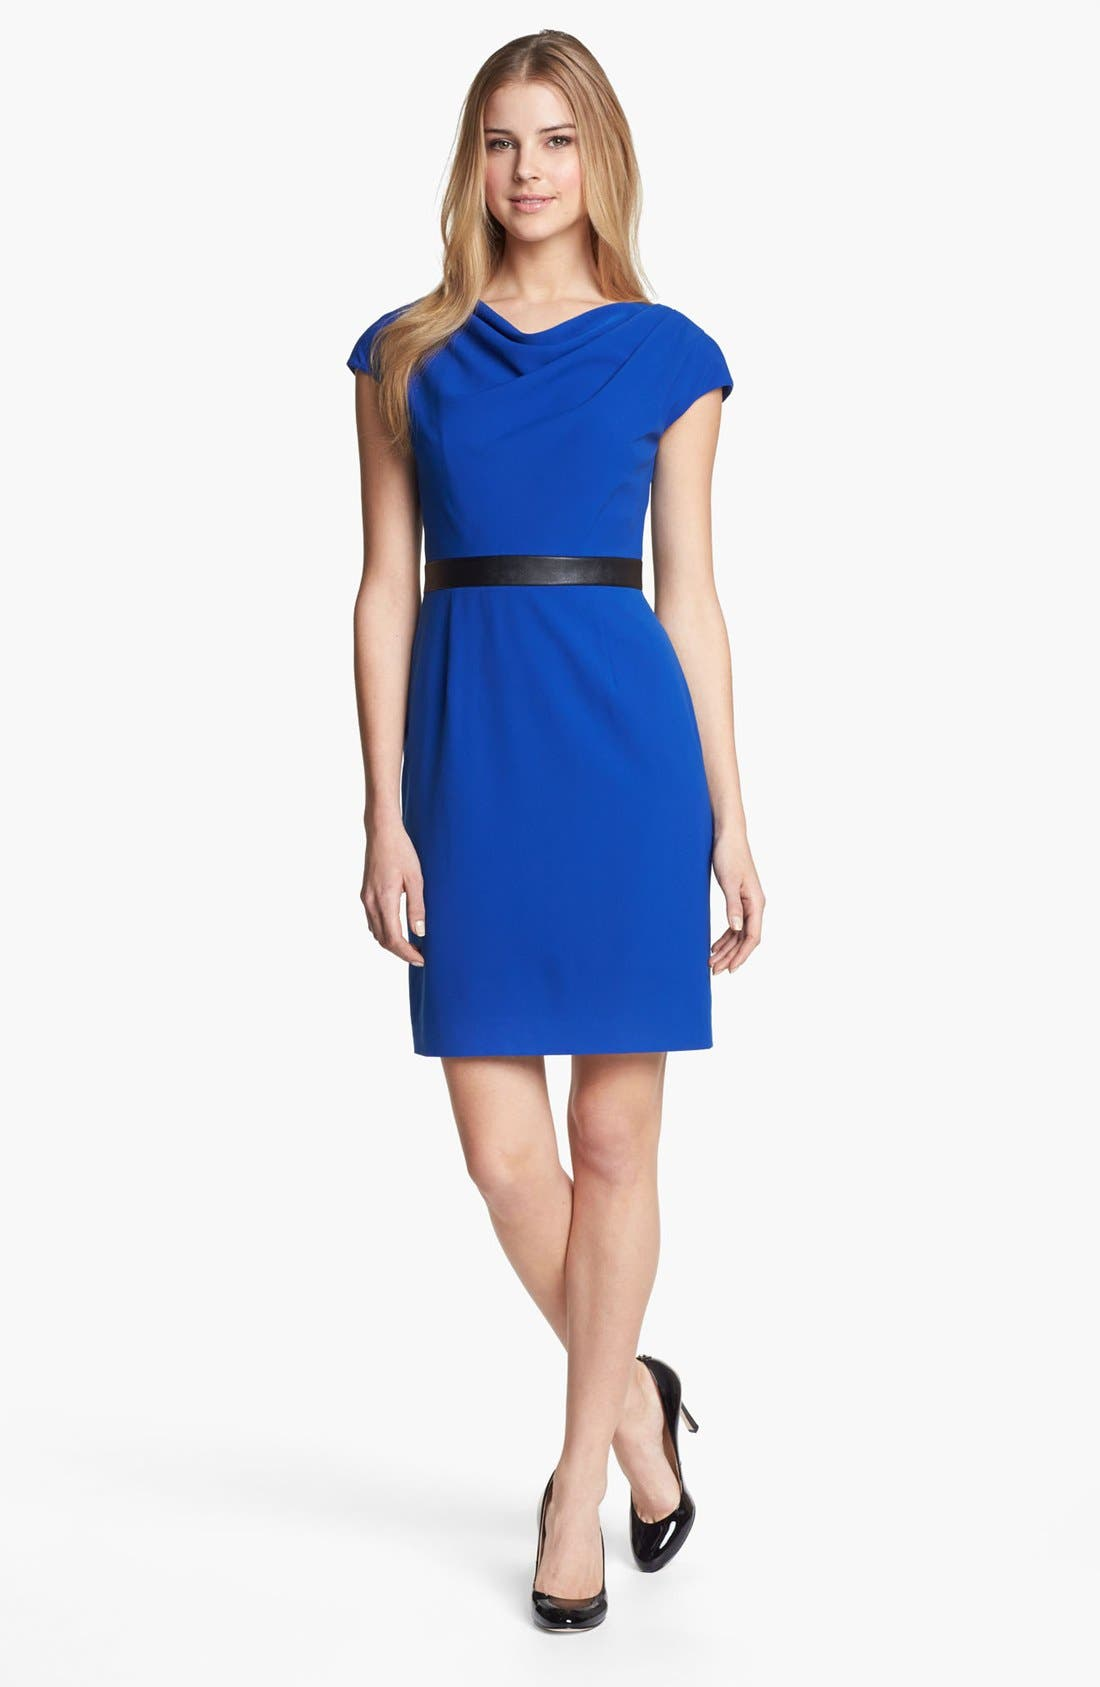 Alternate Image 1 Selected - Adrianna Papell Drape Neck Dress (Regular & Petite) (Online Only)